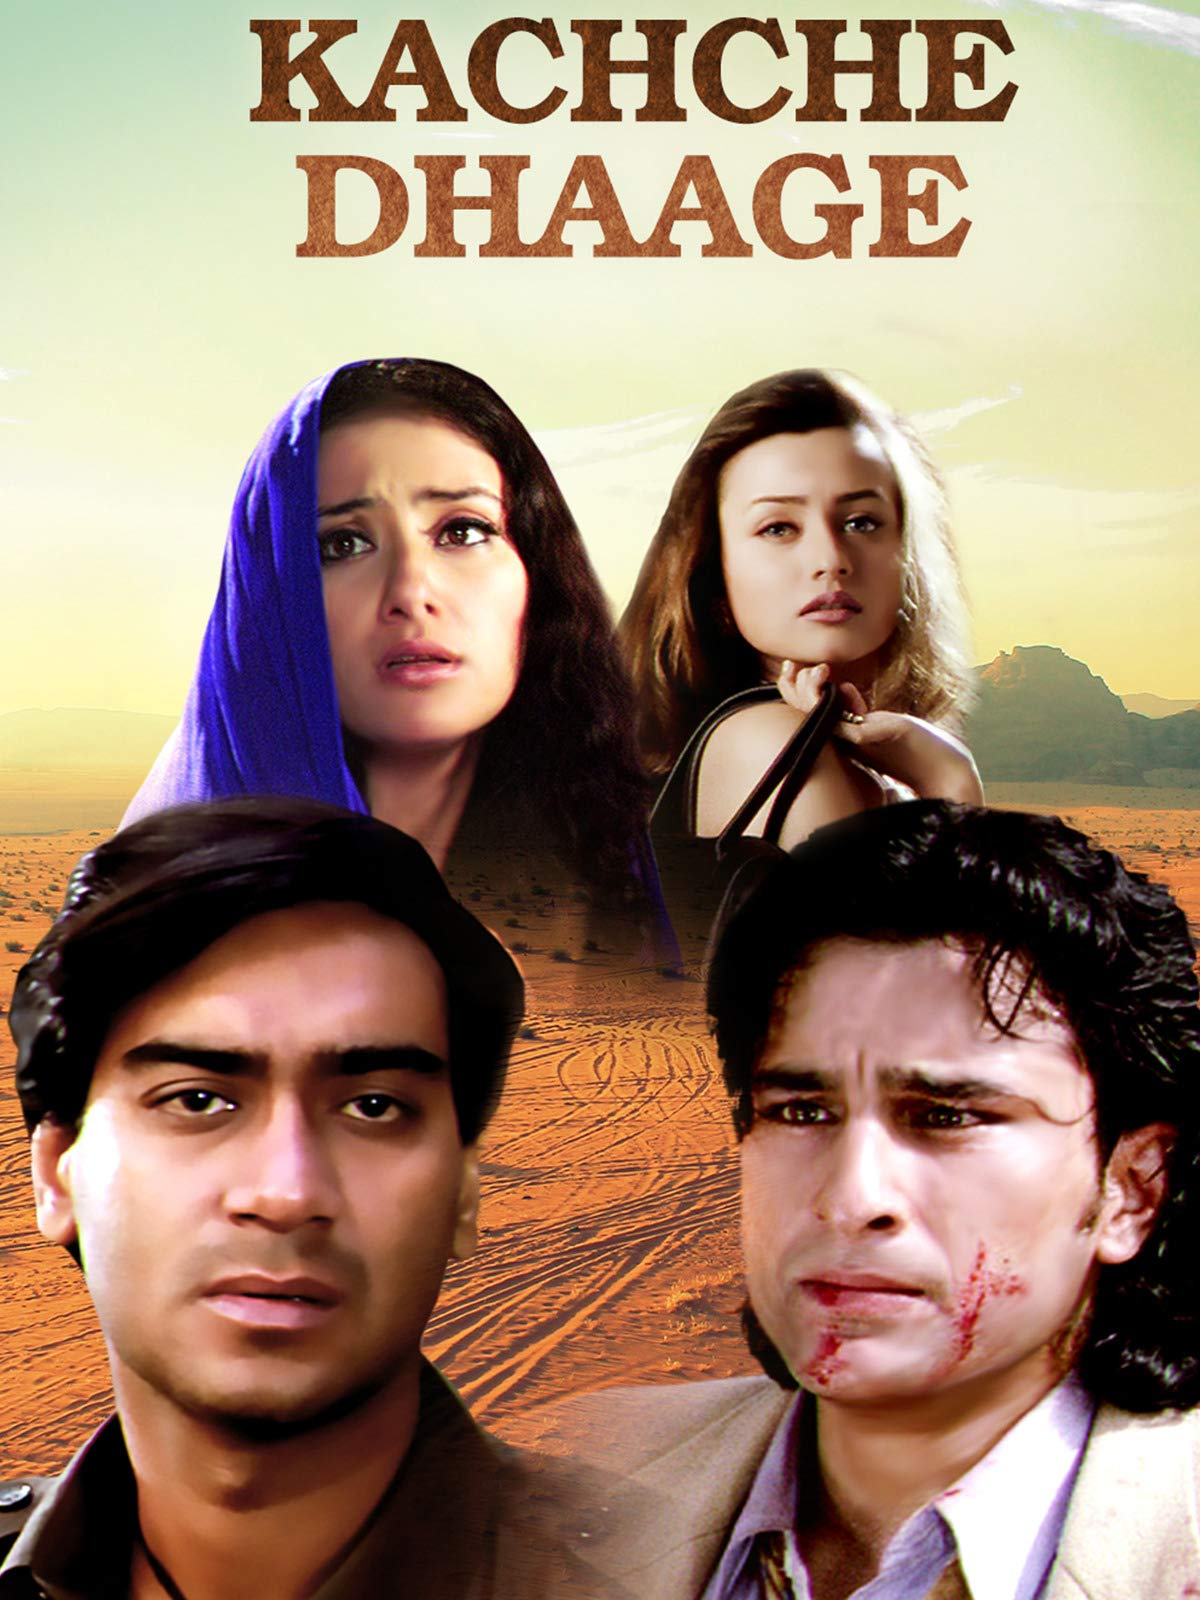 Kachche Dhaage (1999) Box Office Collection India Overseas